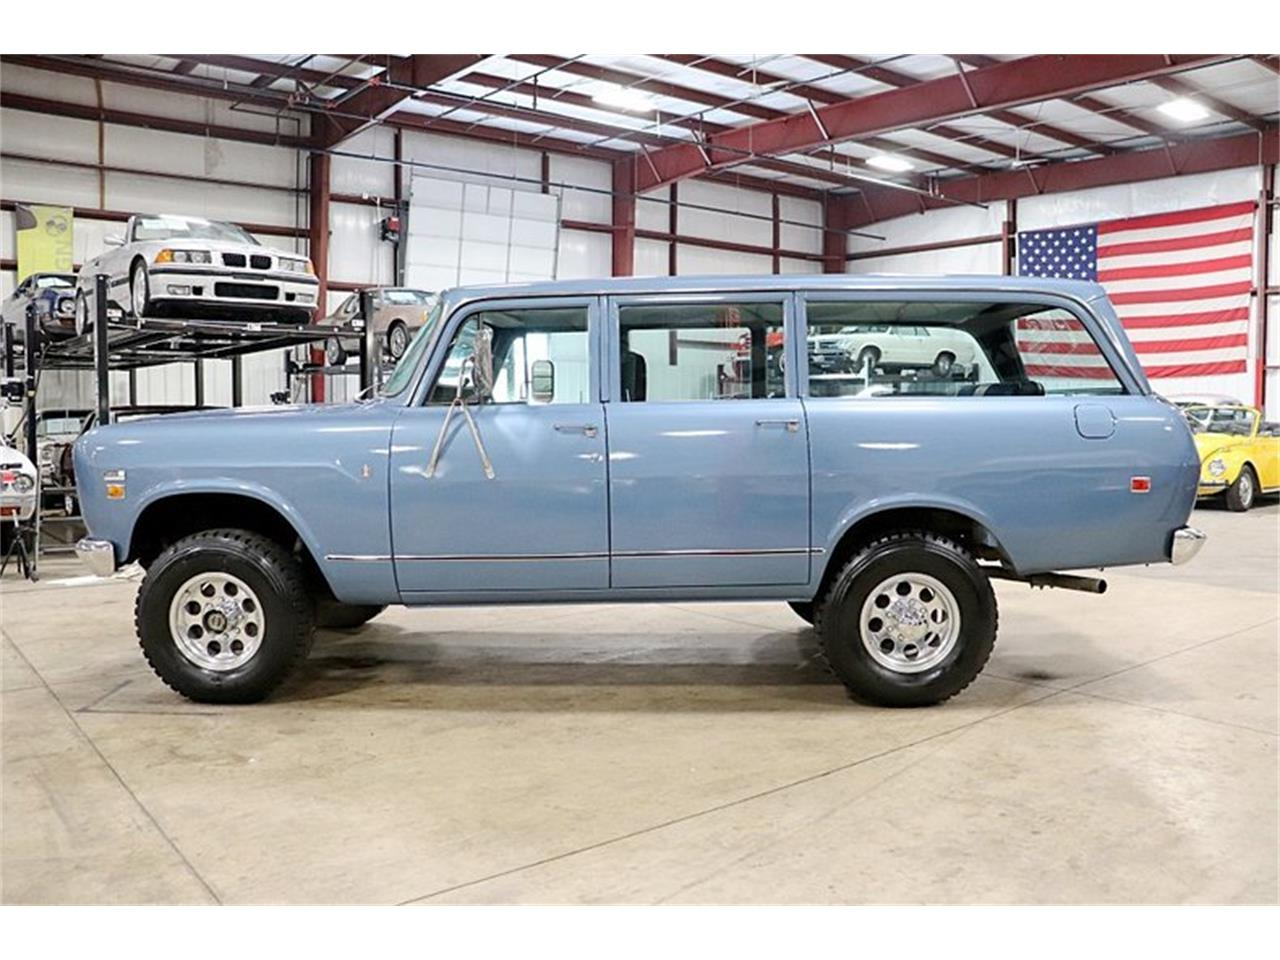 Large Picture of '73 International Harvester - $19,900.00 - Q50E